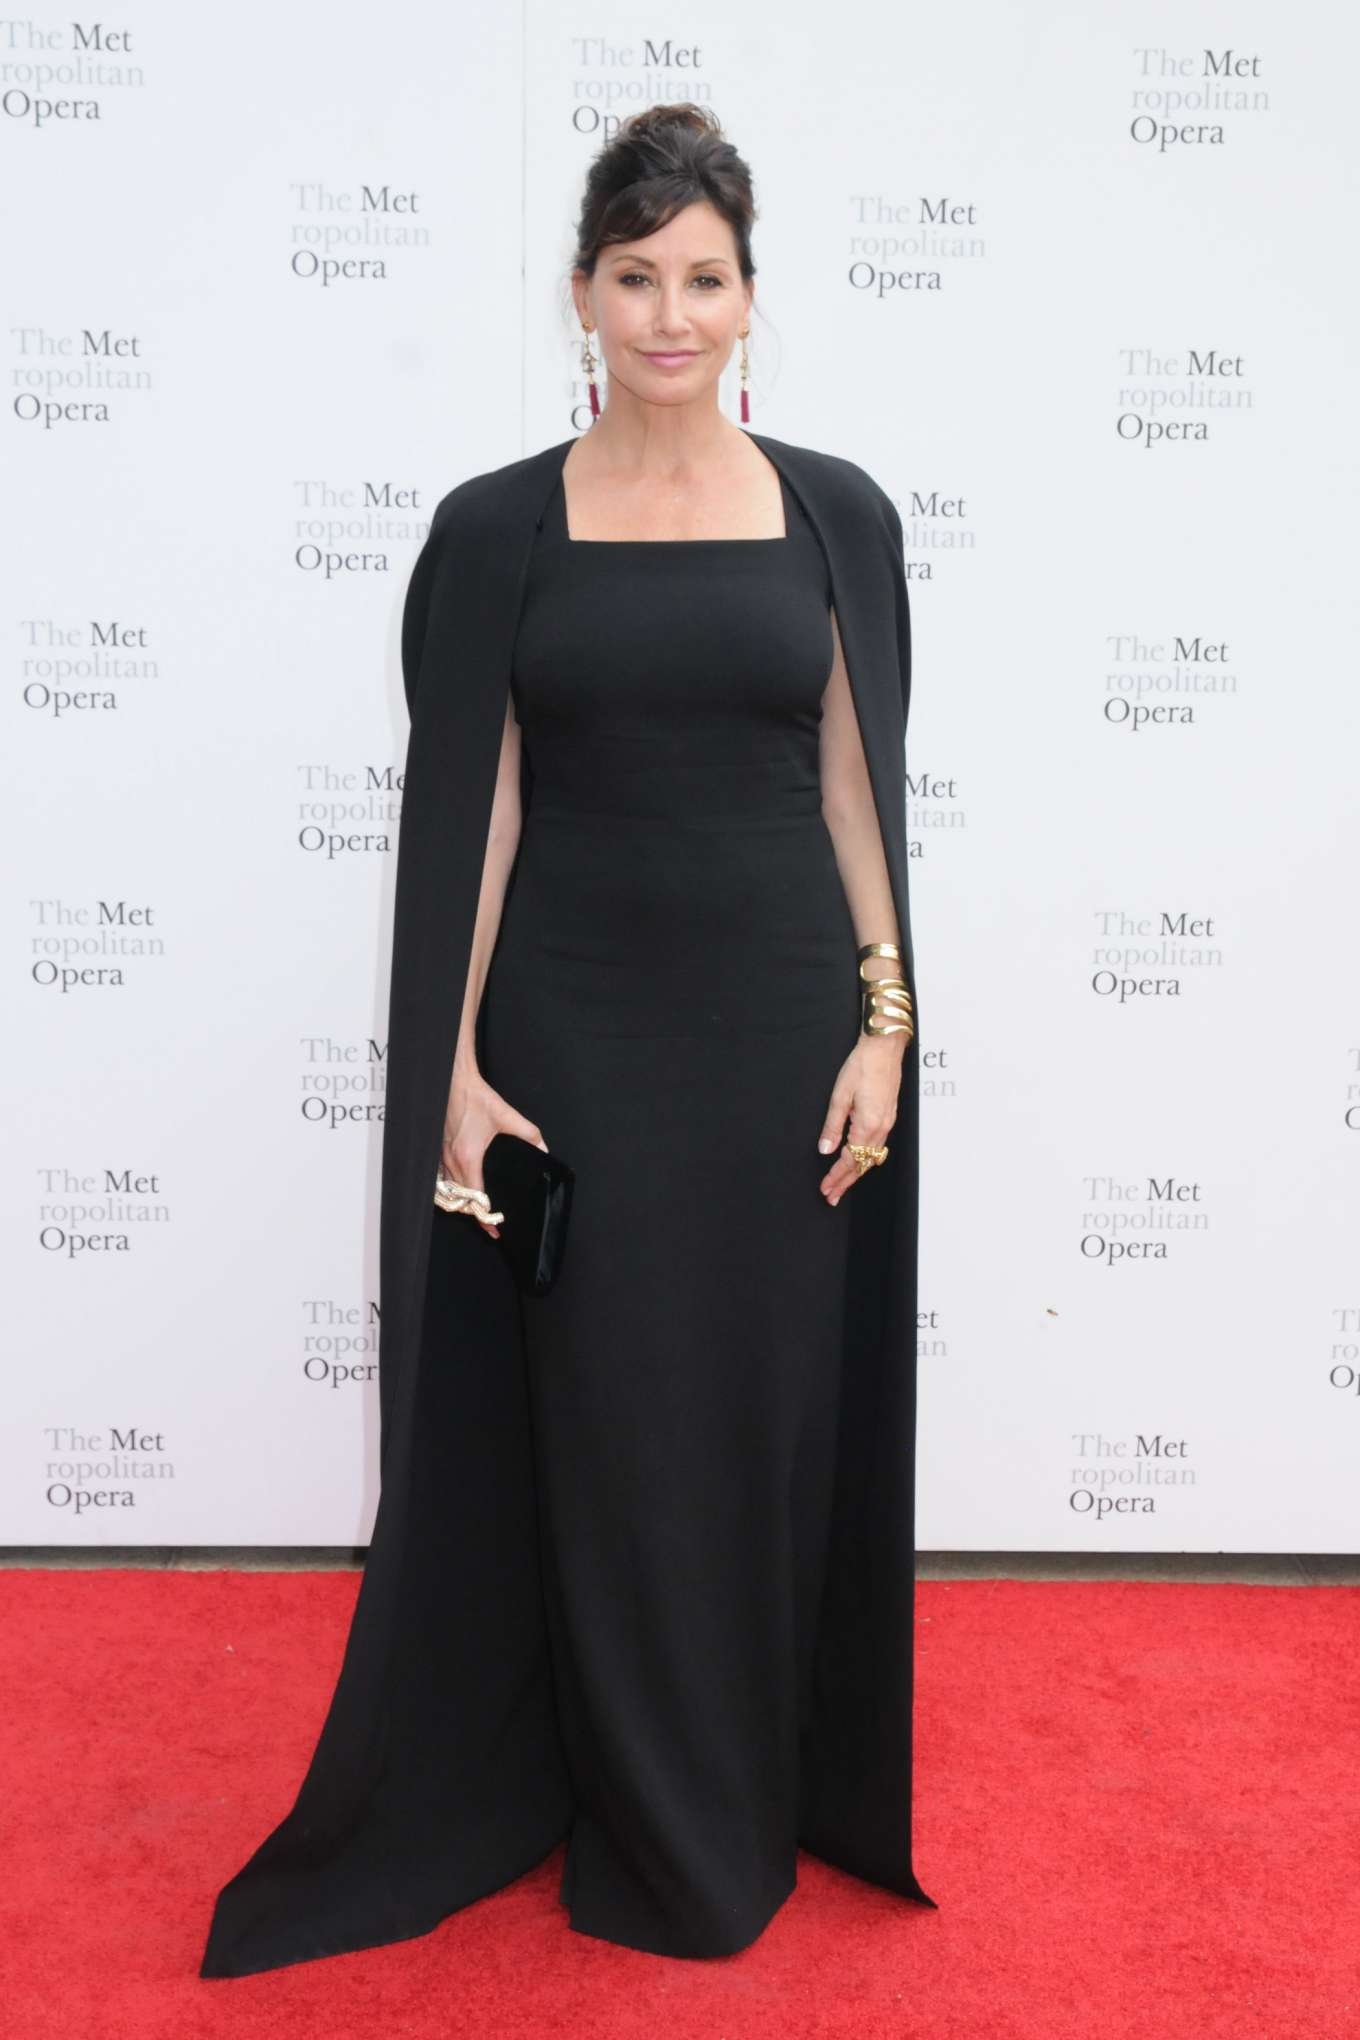 Gina Gershon - Metropolitan Opera 2019 Opening Night Gala in New York